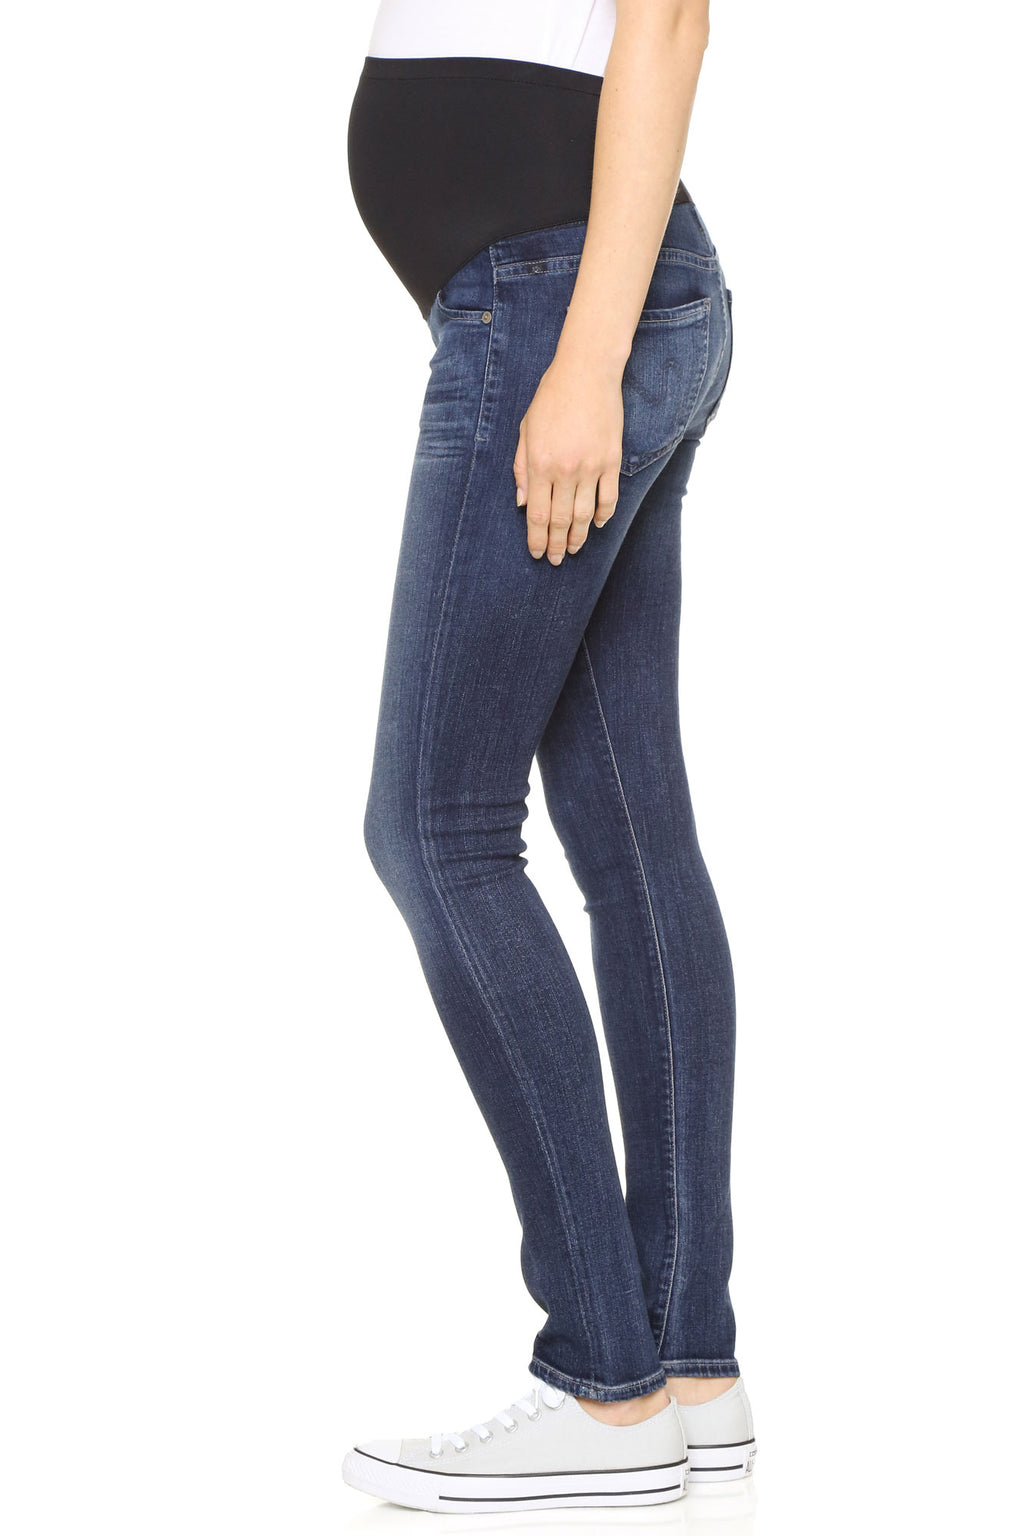 Citizens of Humanity Avedon Ultra Skinny Maternity Jeggings  In Forum Rinse - Seven Women Maternity